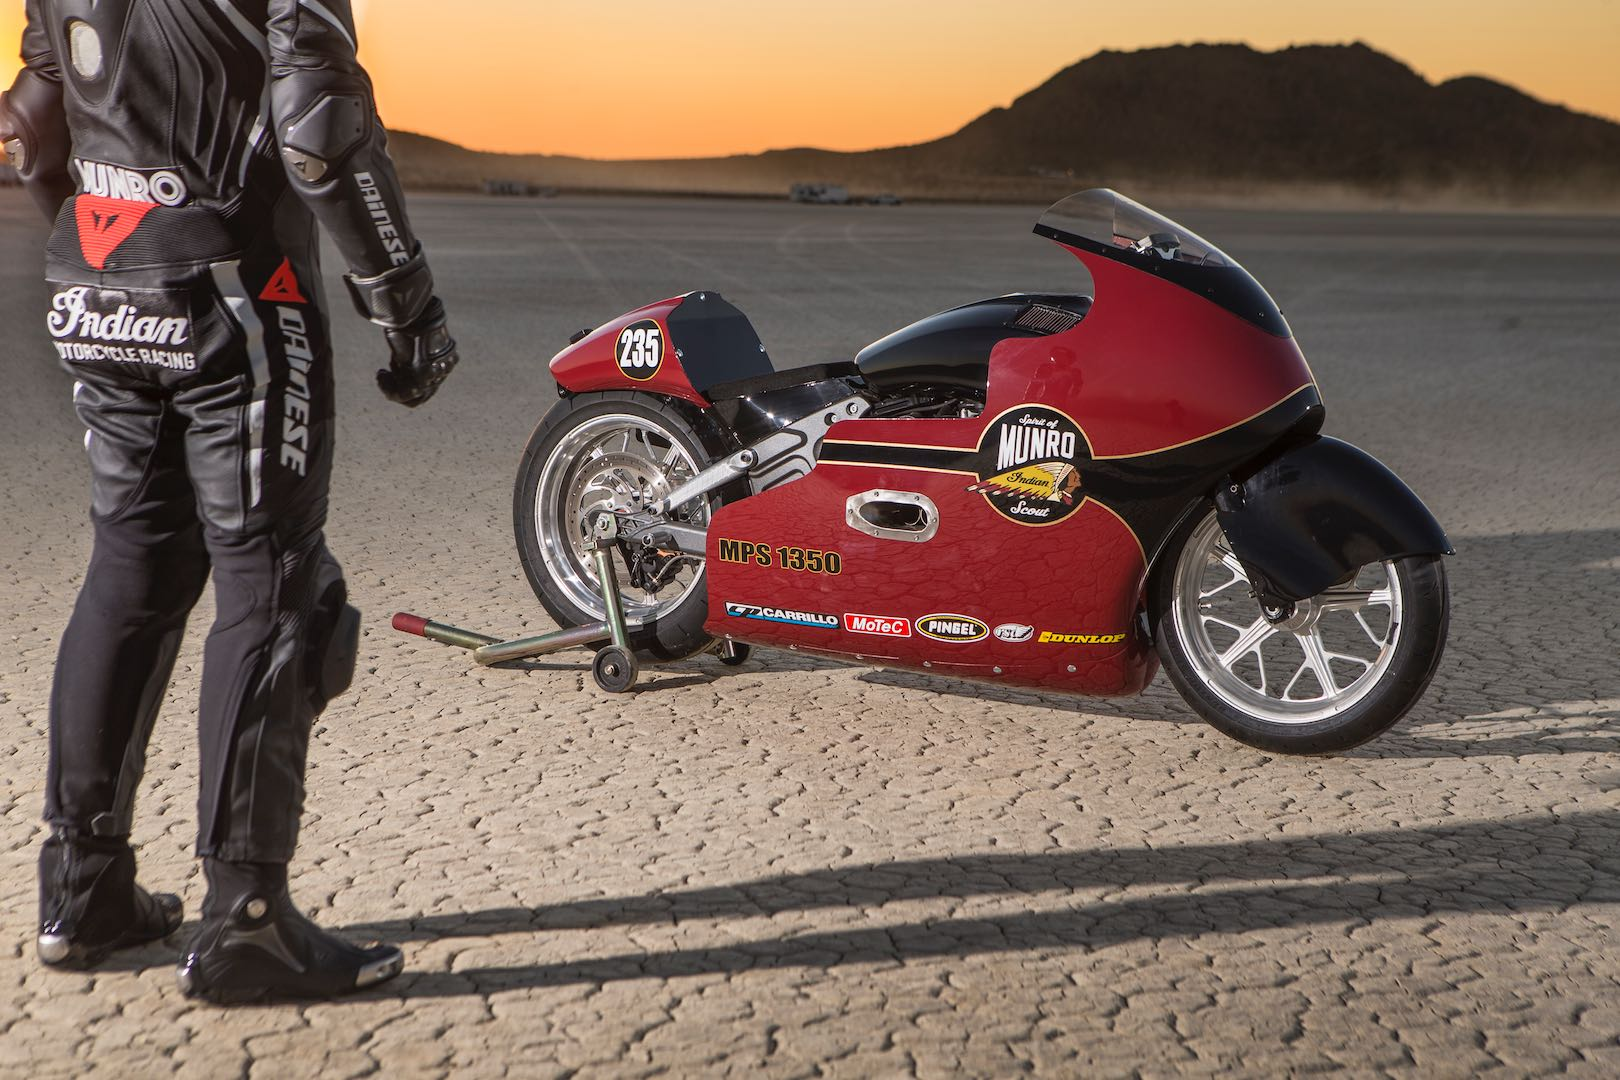 Fastest Bike In The World >> The Spirit Of Munro: A Fitting Tribute To The Worlds ...